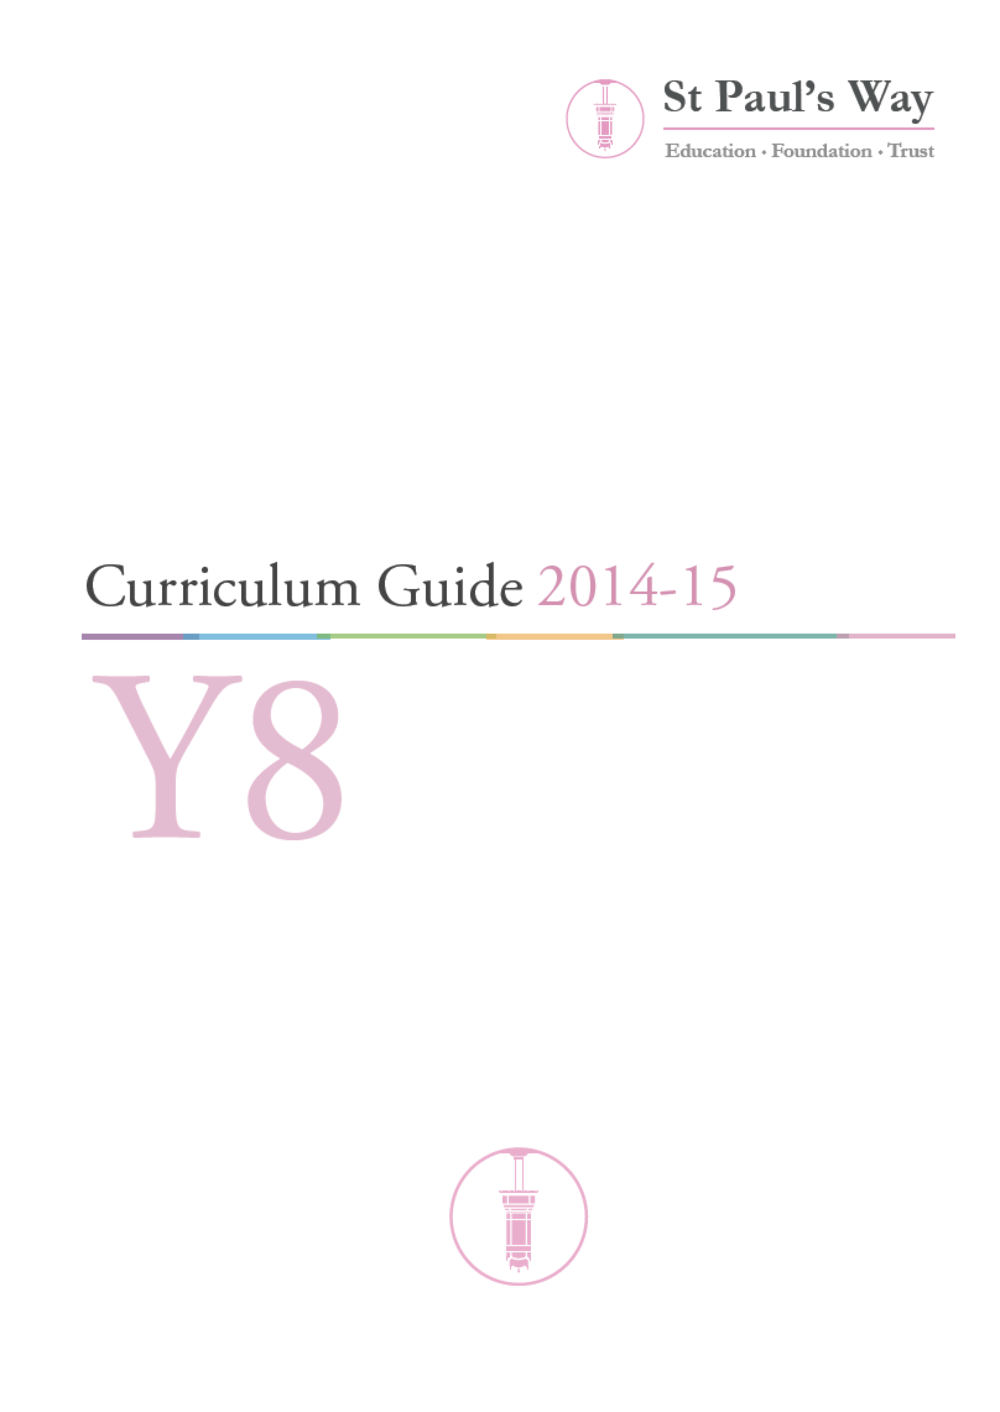 Y8 Curriculum Guide